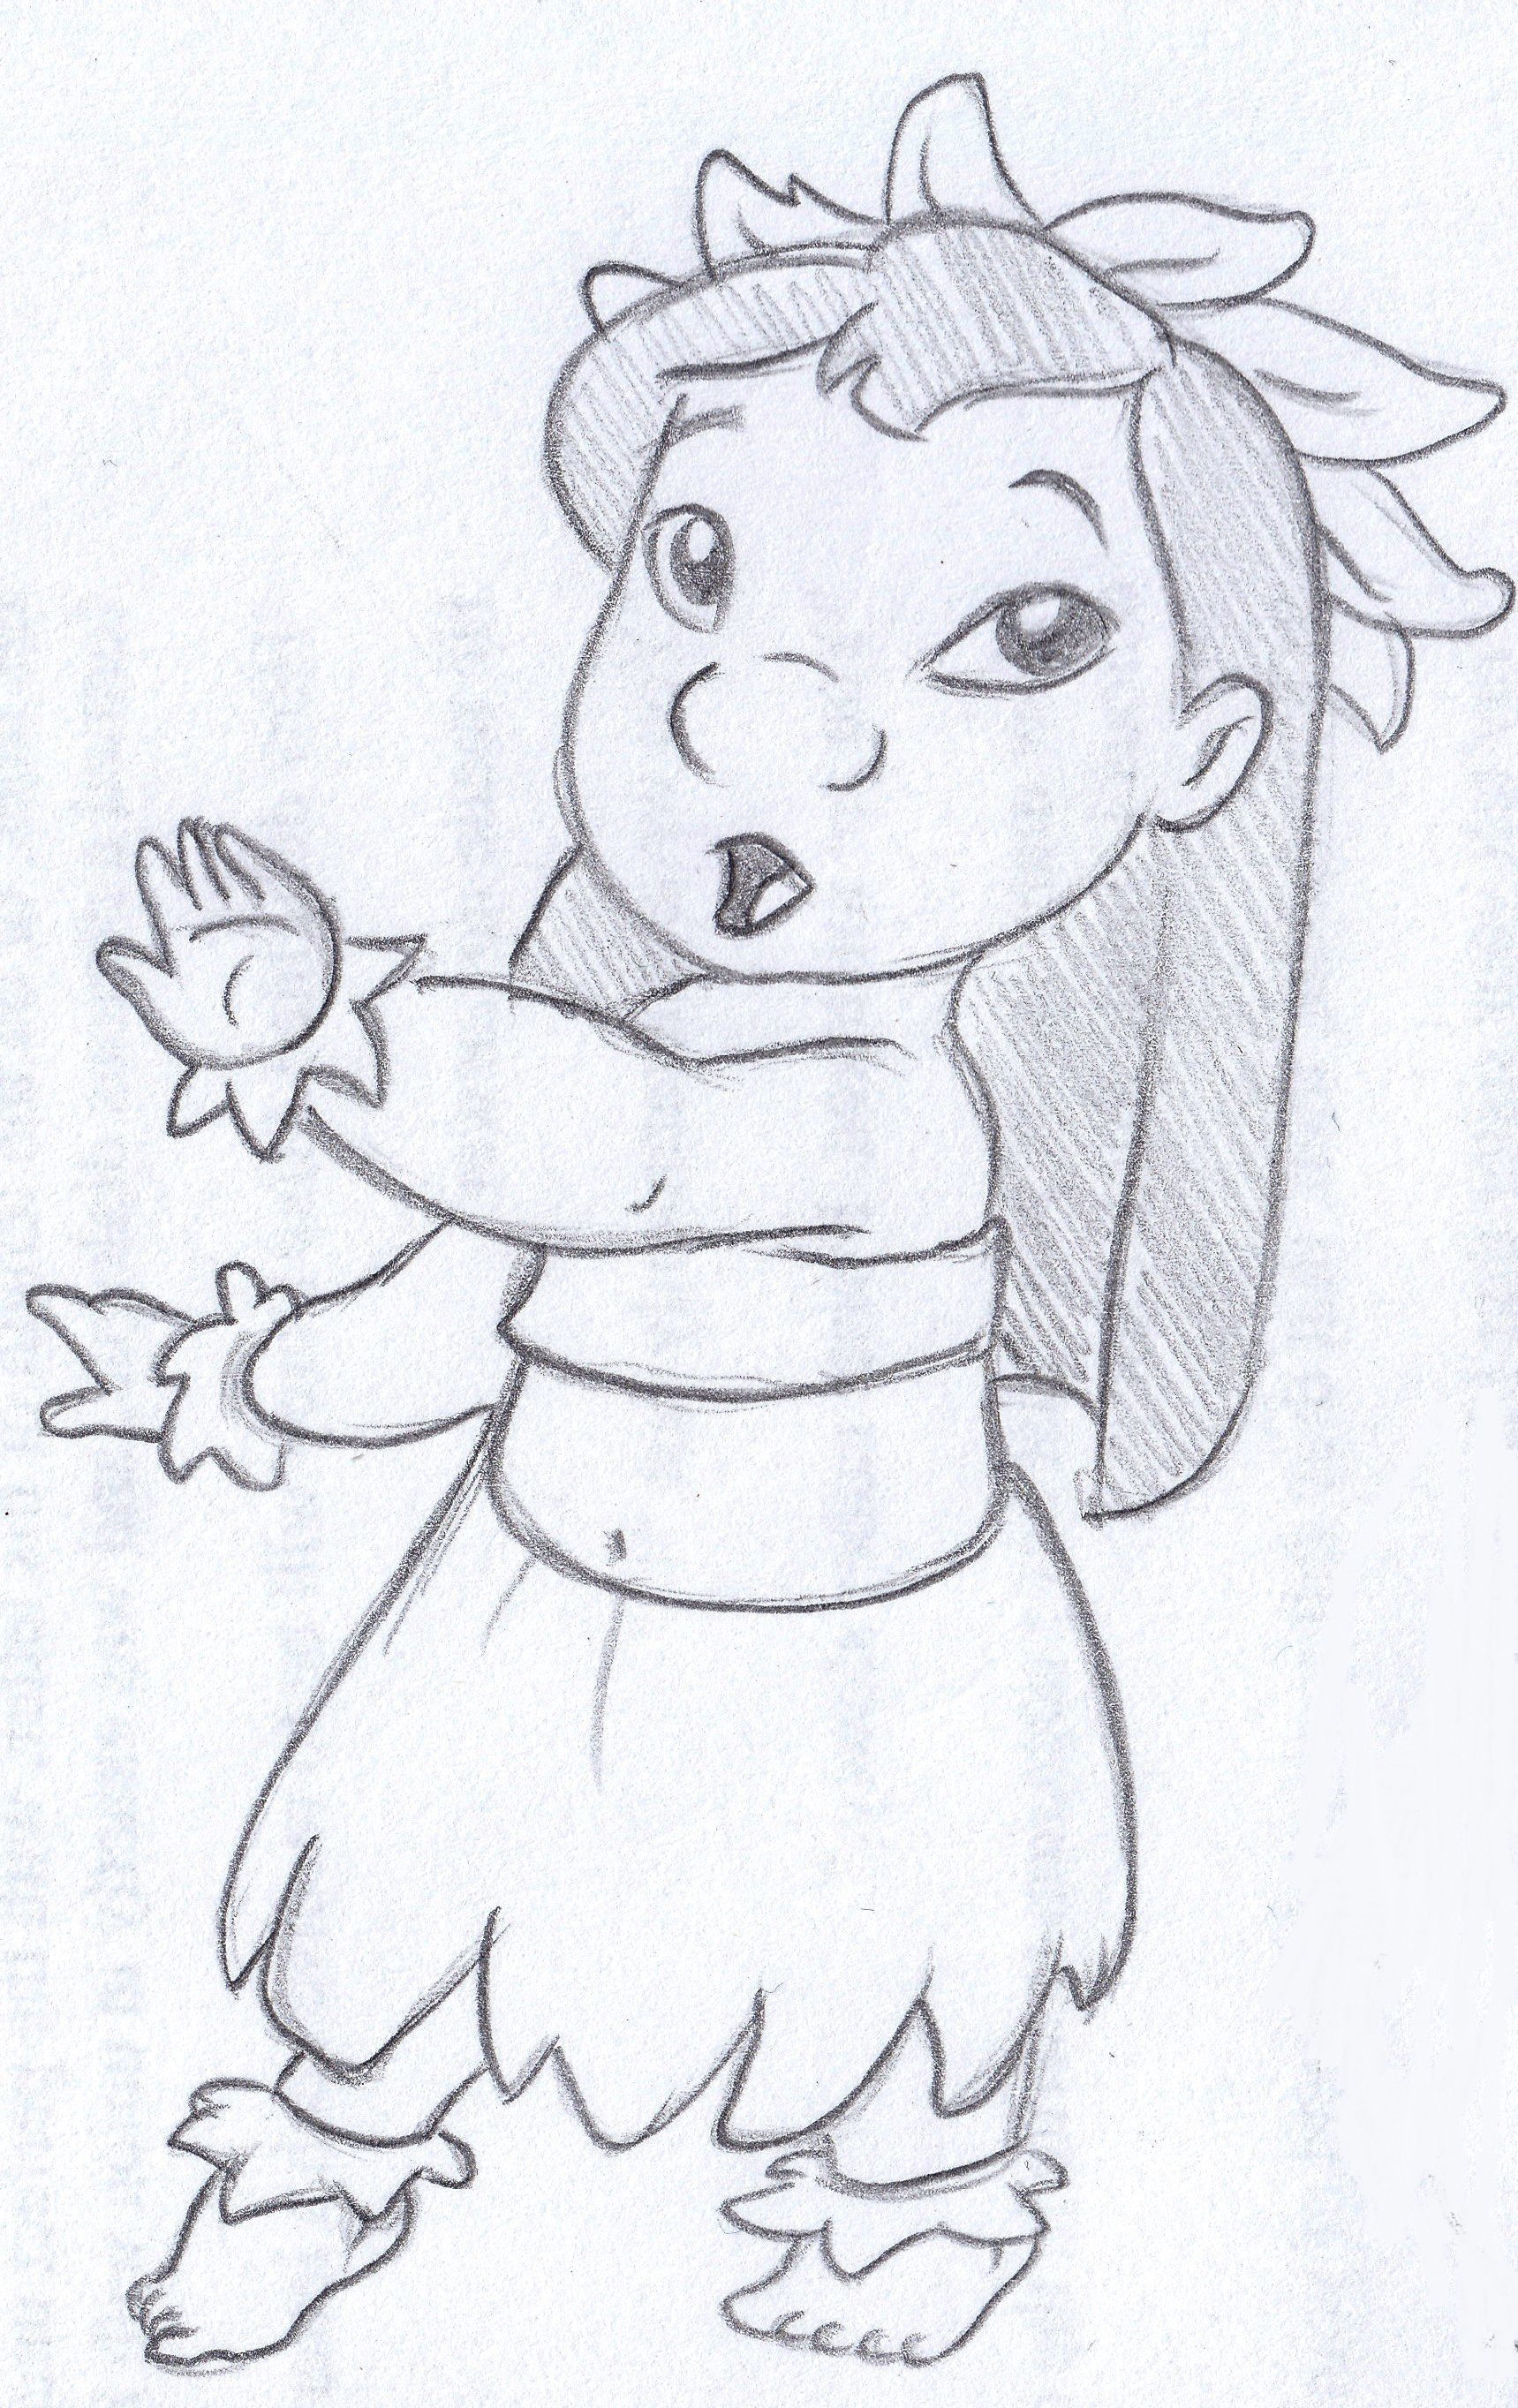 Jazisweets Come Disegnare Drawings Disney Drawings E Disney